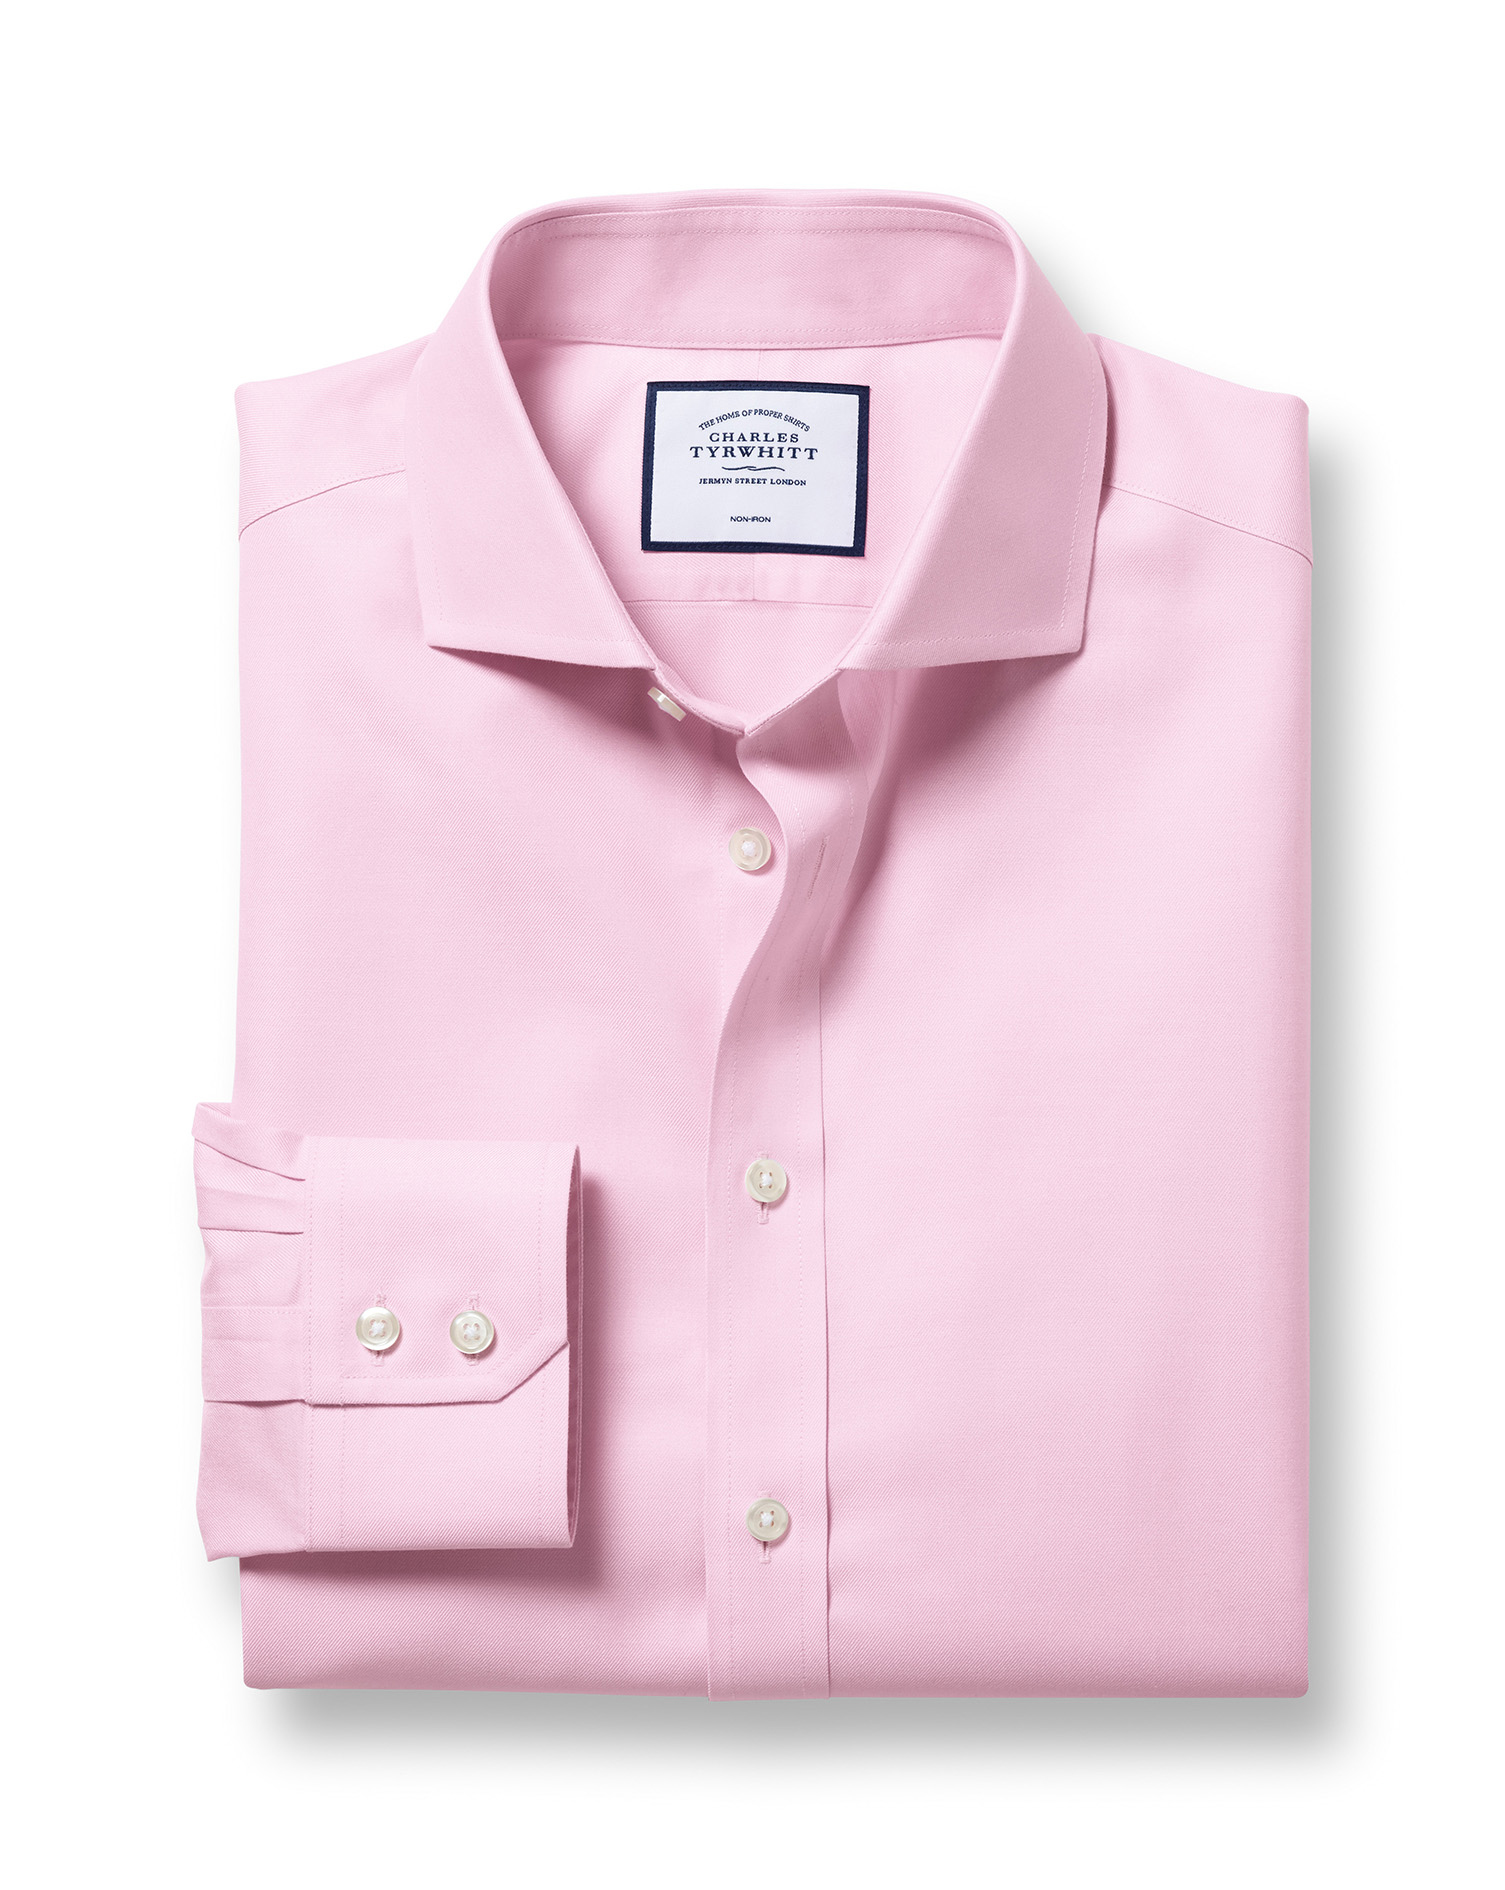 Extra Slim Fit Cutaway Non-Iron Twill Pink Cotton Formal Shirt Single Cuff Size 15/33 by Charles Tyrwhitt from Charles Tyrwhitt